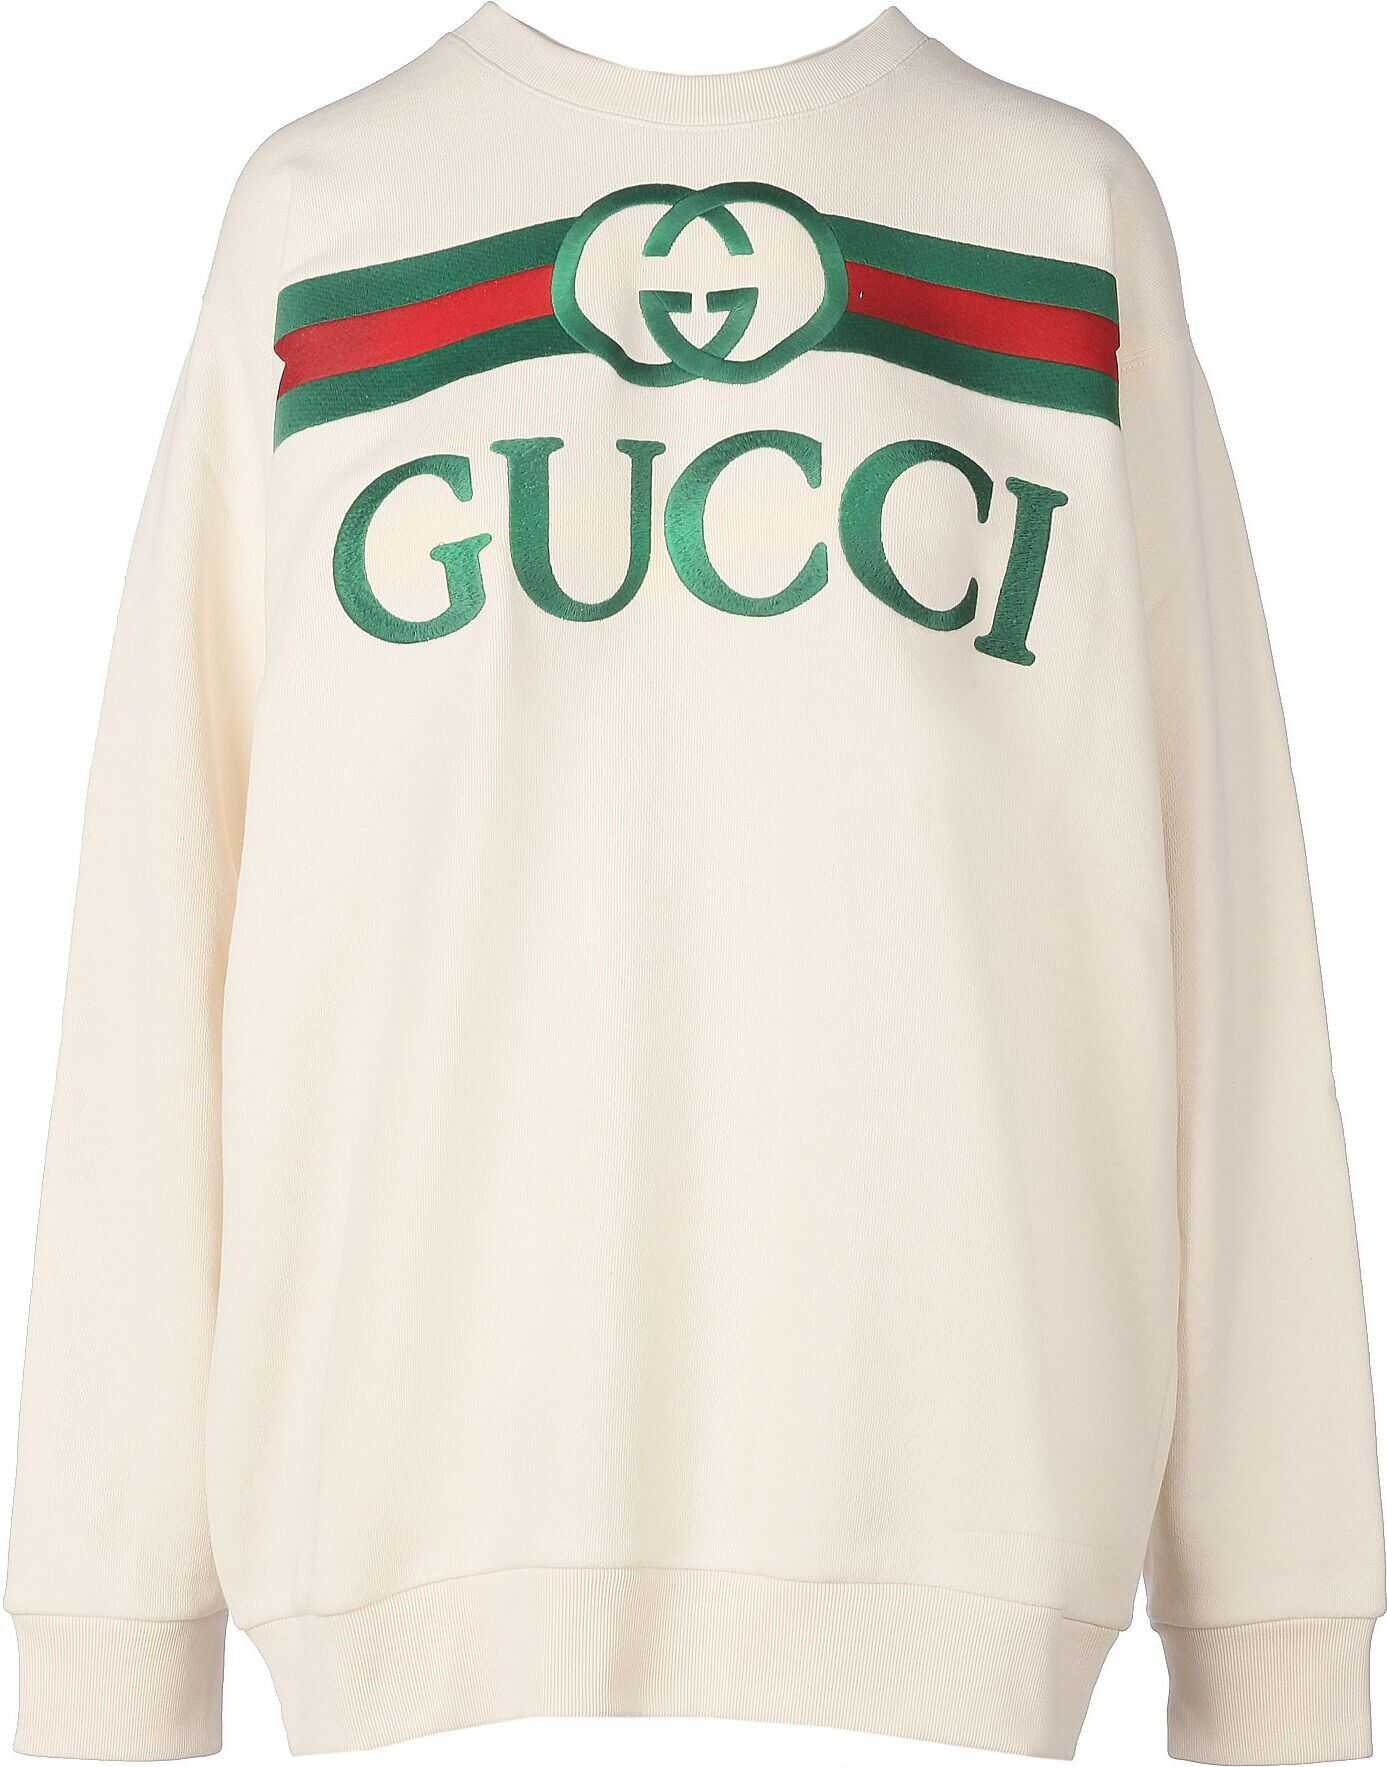 Gucci Cotton Sweatshirt WHITE